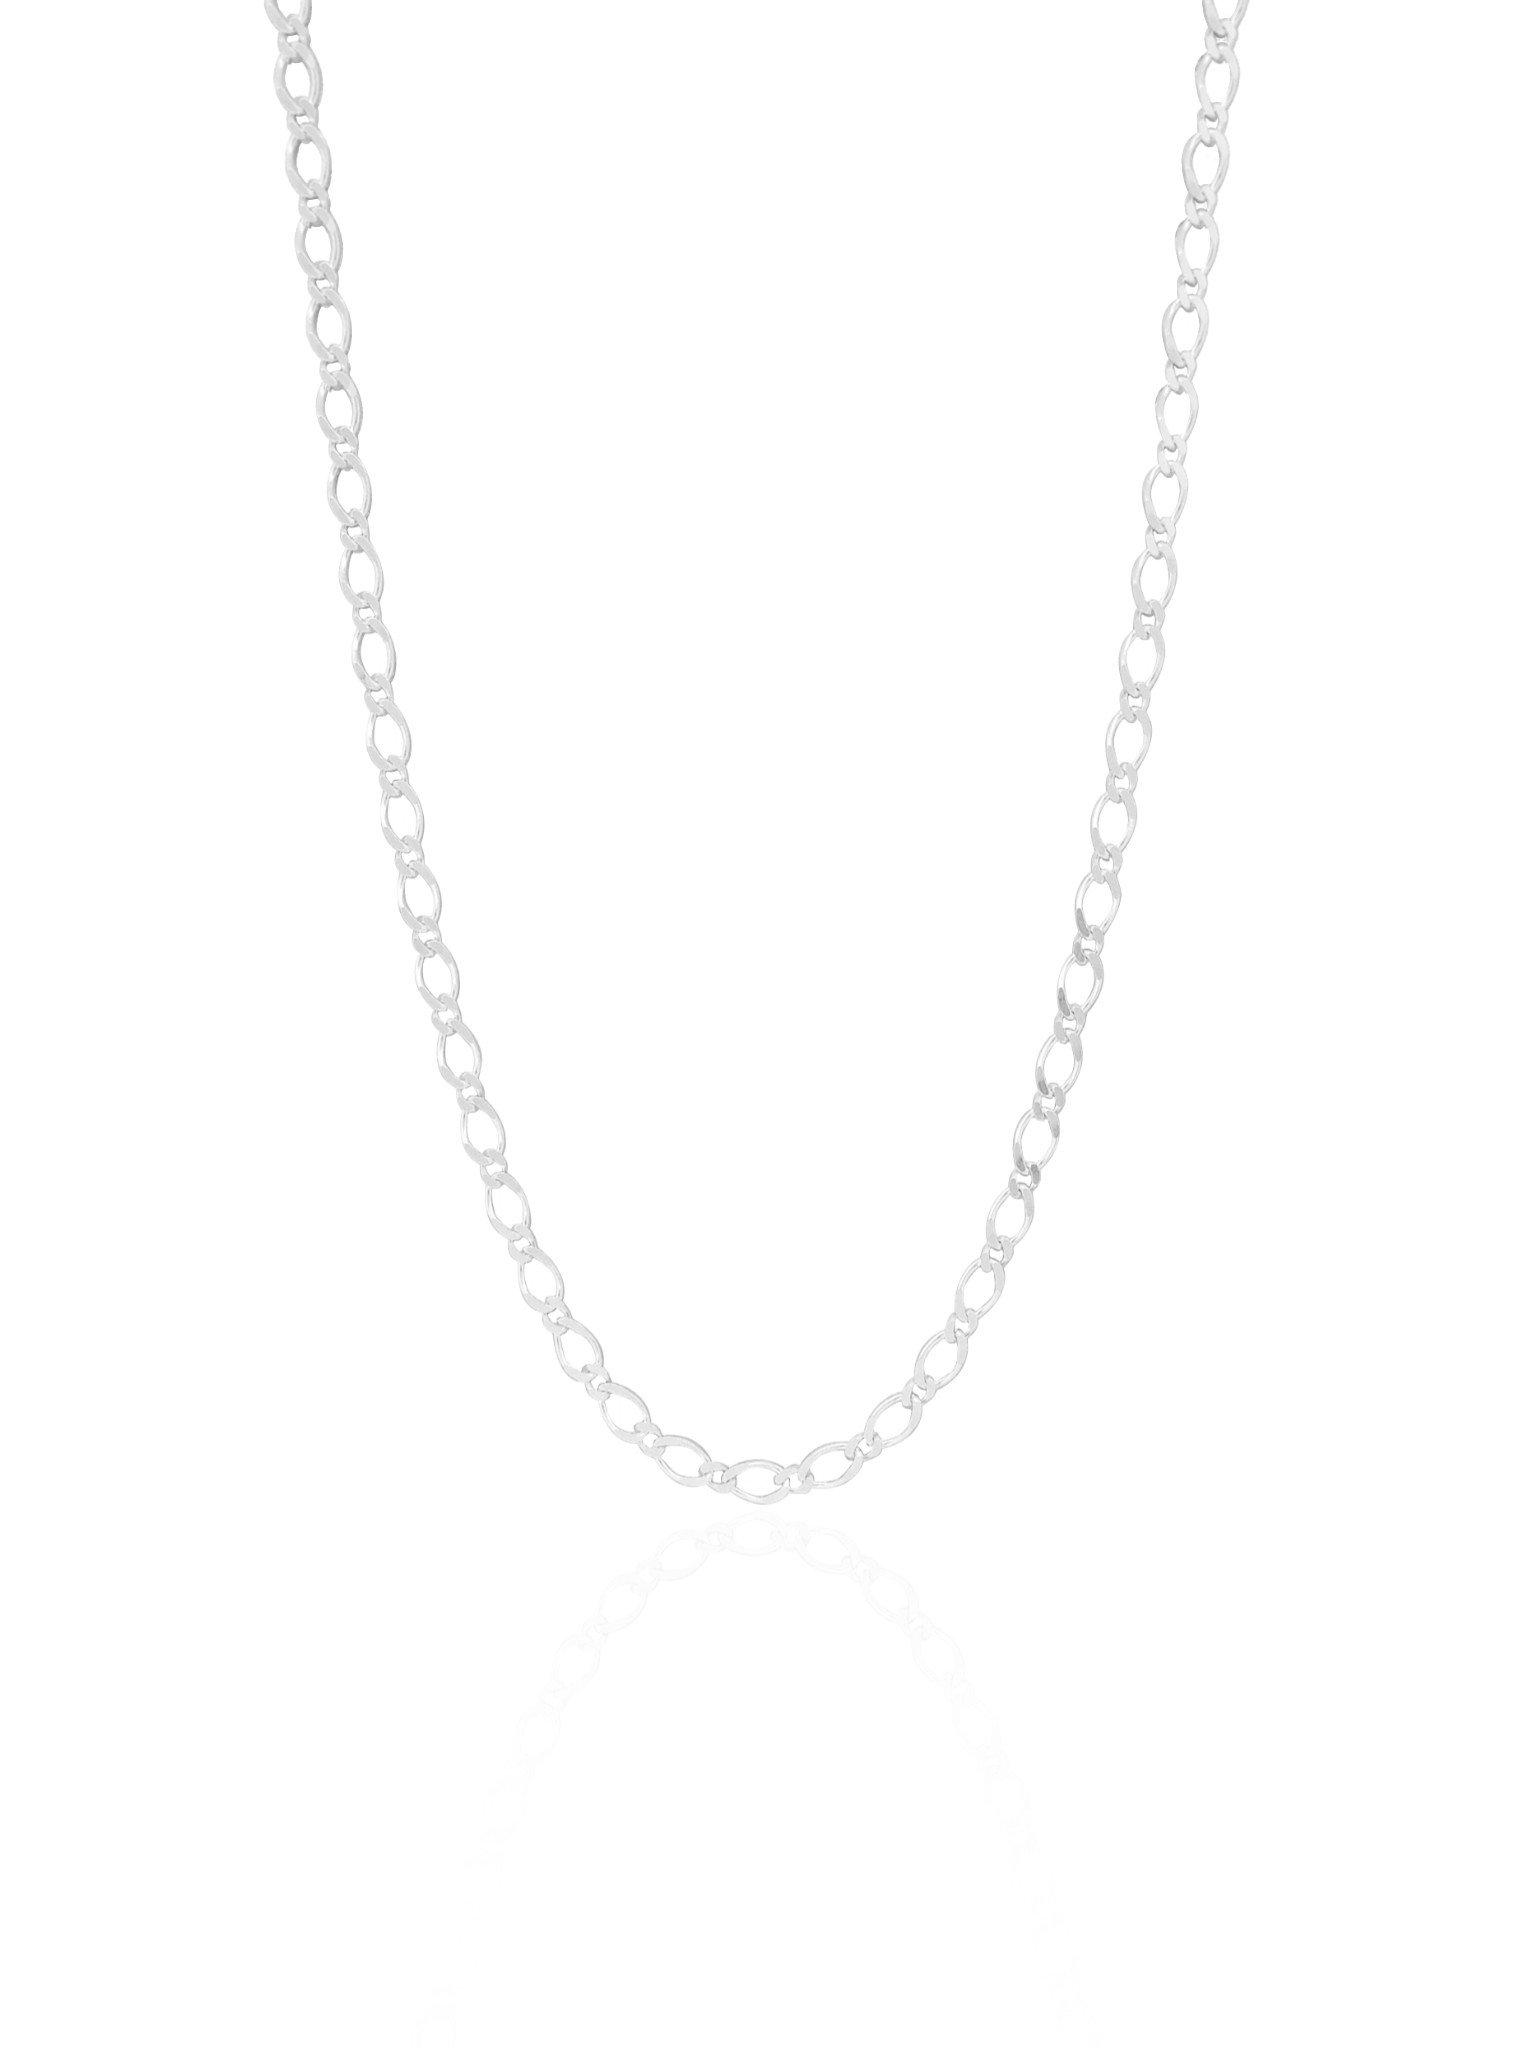 Reagan Small Figaro Necklace Chain in Sterling Silver